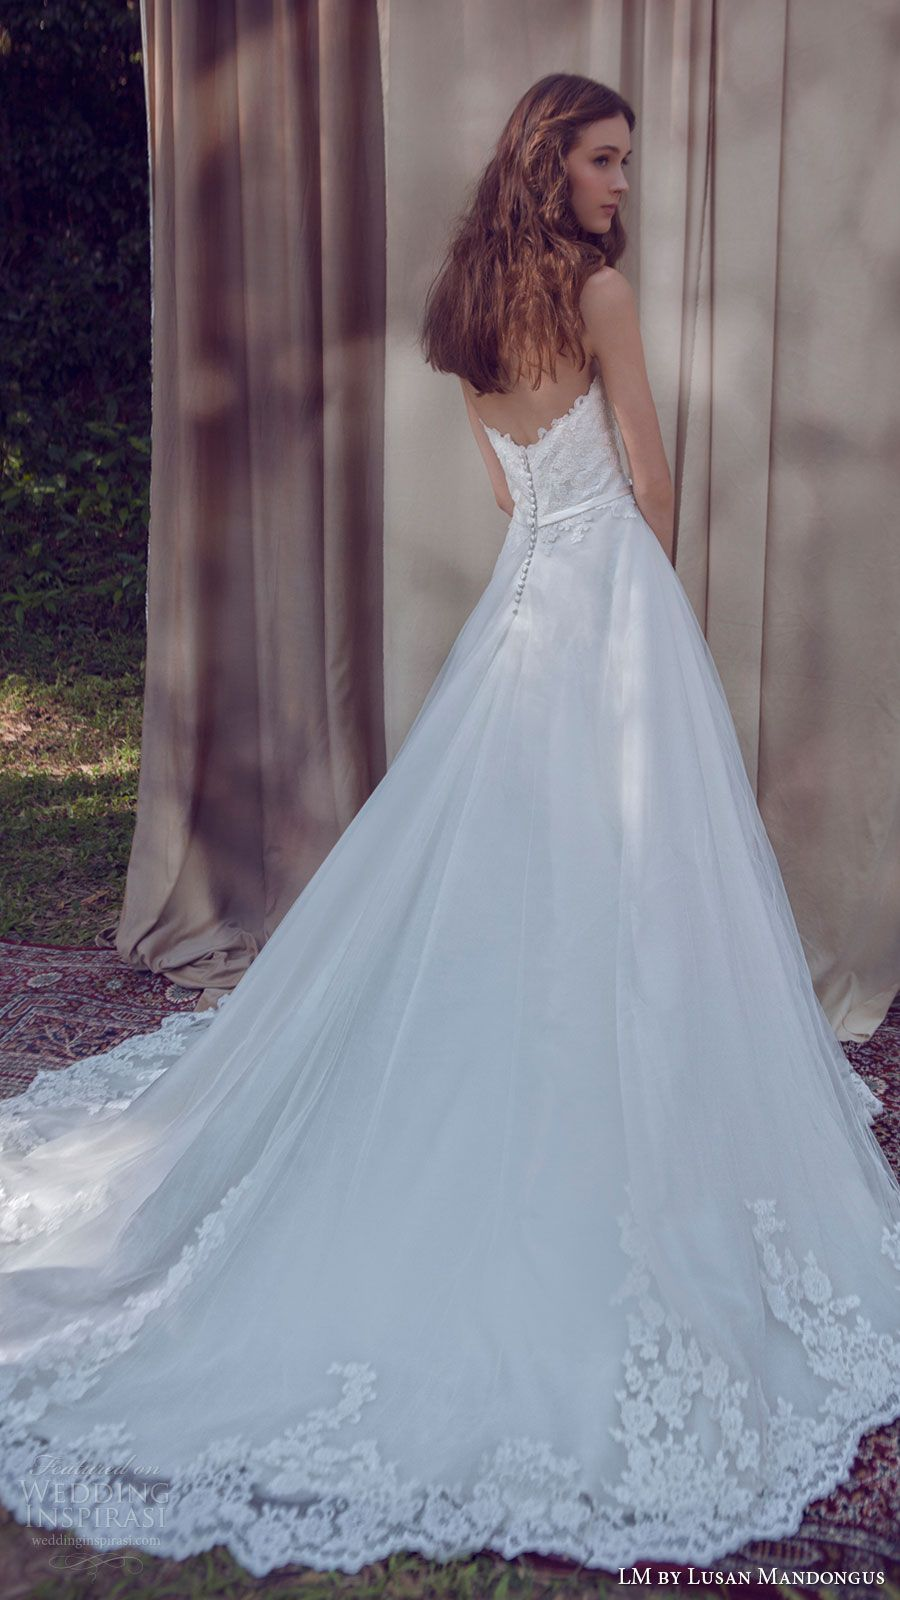 LM by Lusan Mandongus 2017 Wedding Dresses | Ball gowns, Gown ...